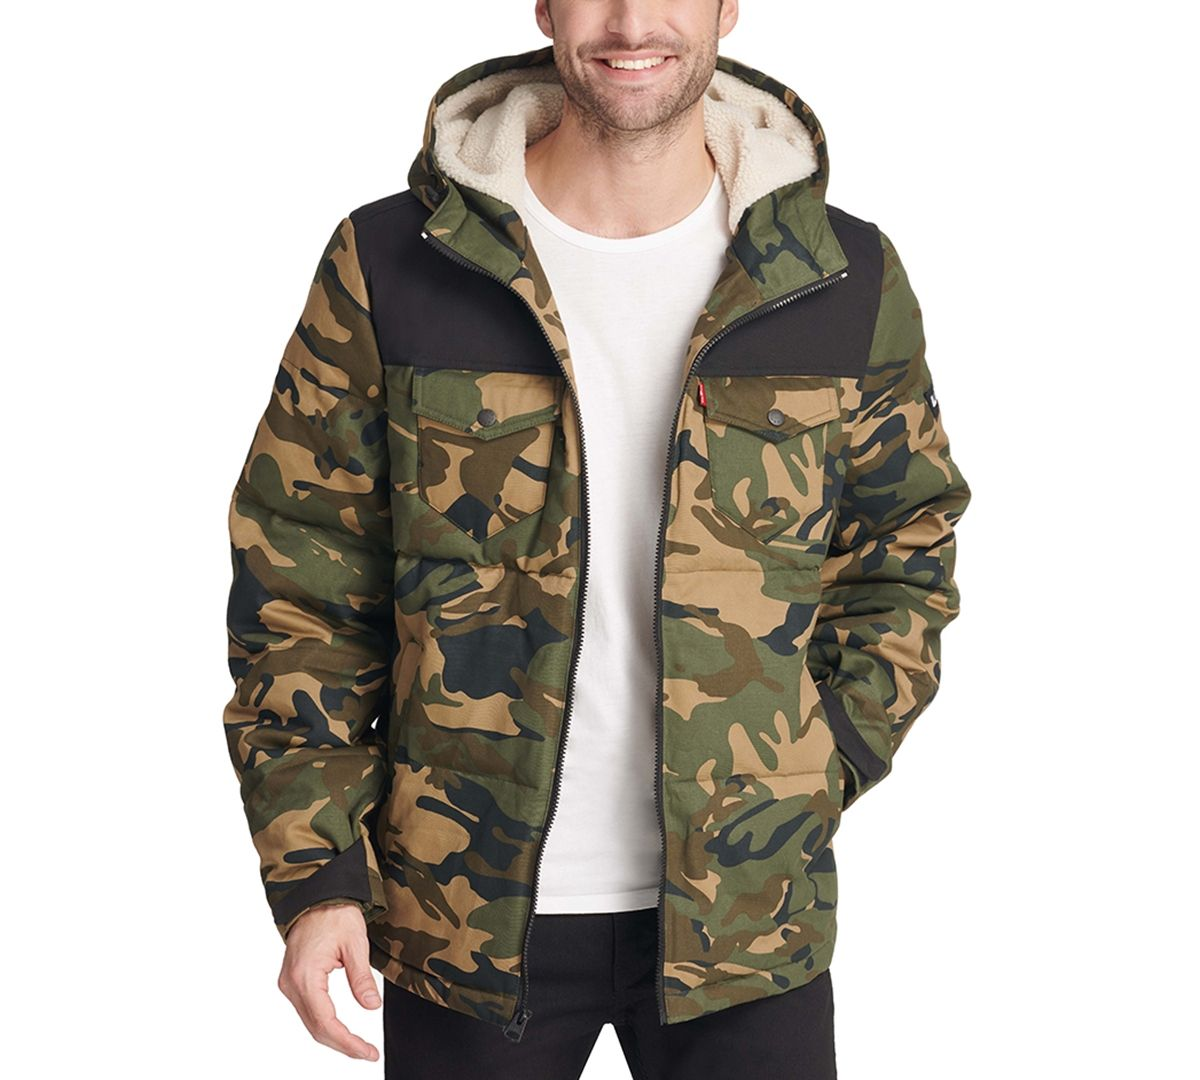 Levi S Men S Quilted Mix Media Puffer Jacket With Fleece Lined Hood Reviews Coats Jackets Men Macy S Big Clothes Man Quilt Clearance Clothes [ 1080 x 1200 Pixel ]